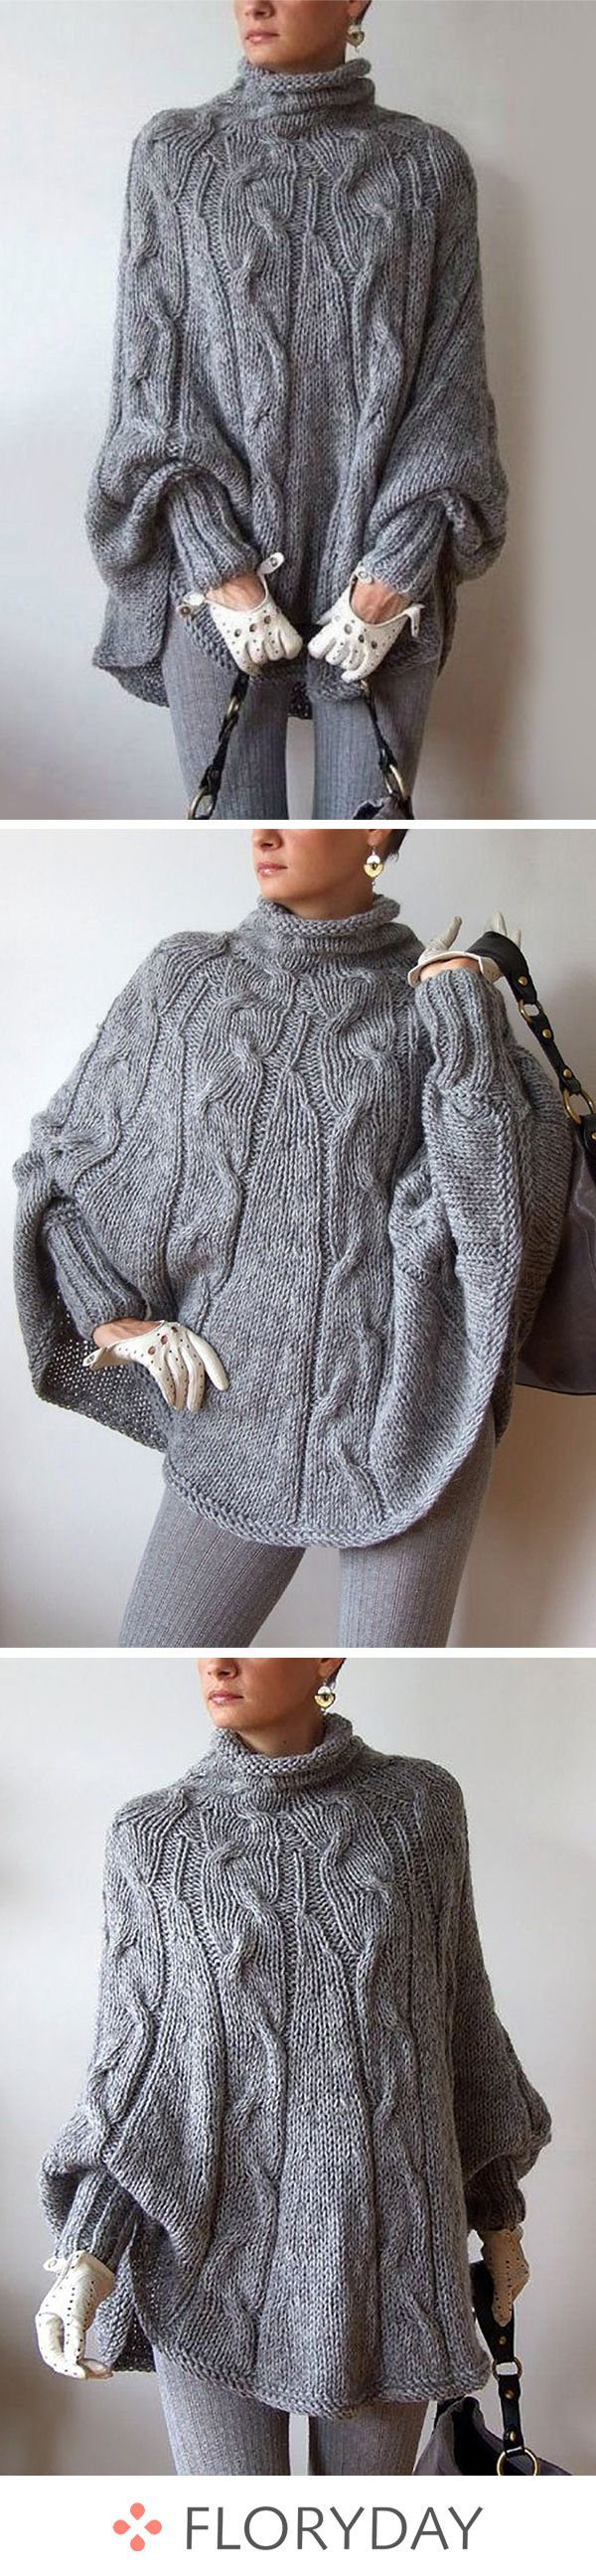 Wool Blends High Neckline Solid Loose Sweaters, wool, wool sweater, high neckline, solid sweater, solid, loose sweater, sweaters, autumn outfits, fashion sweaters, warm, casual.